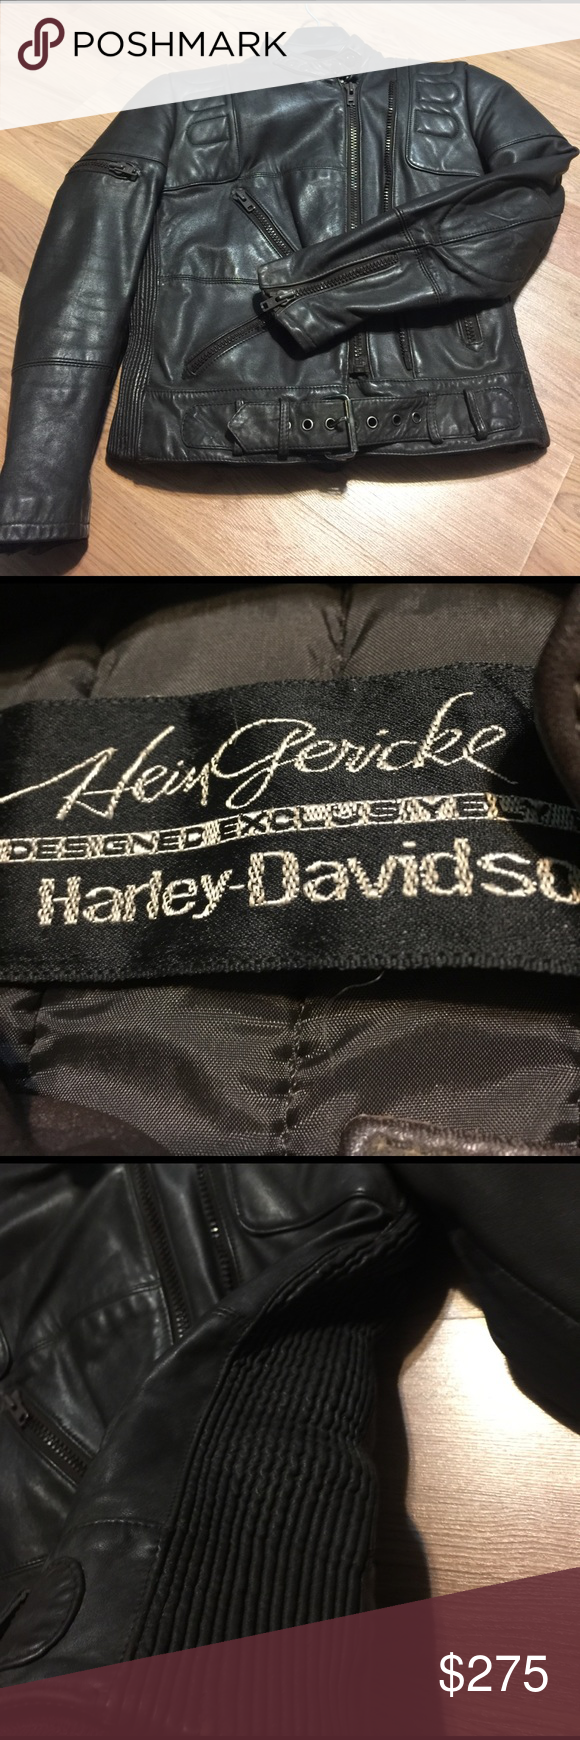 Hein gericke leather jacket/see more photo listing